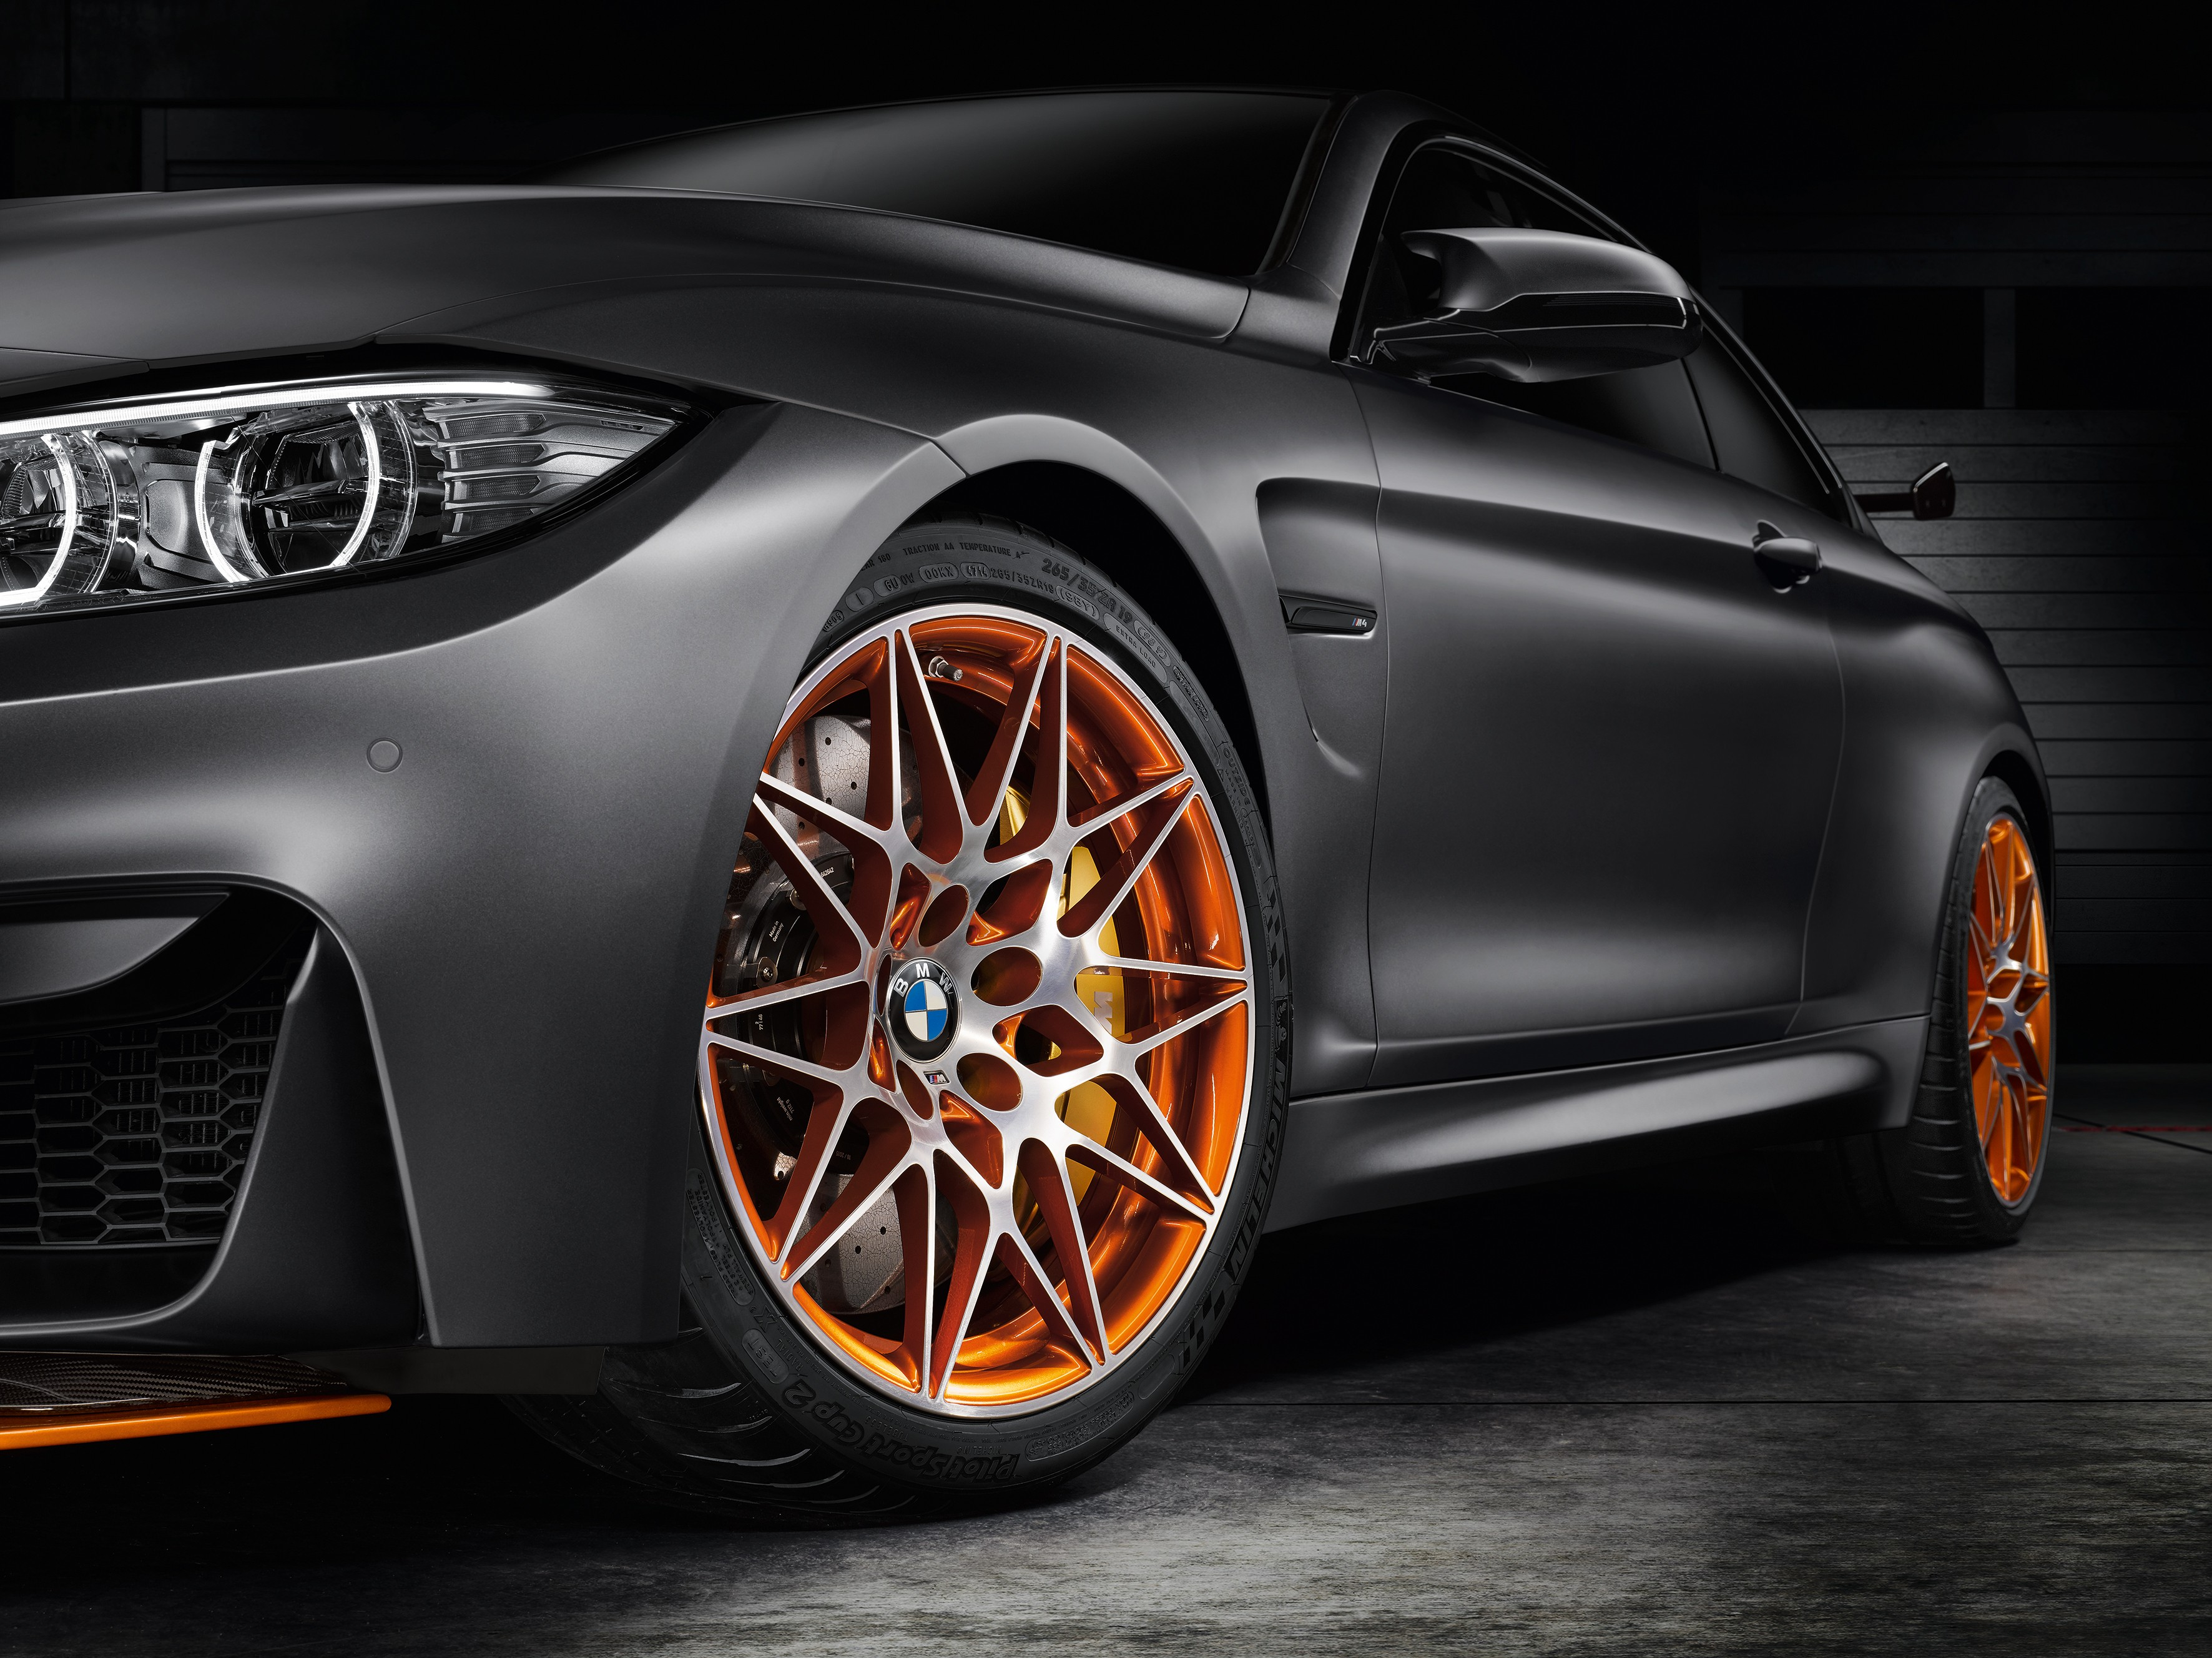 bmw-concept-m4-gts-makes-world-debut-at-pebble-beach-with-oled-lighting-photo-gallery_4